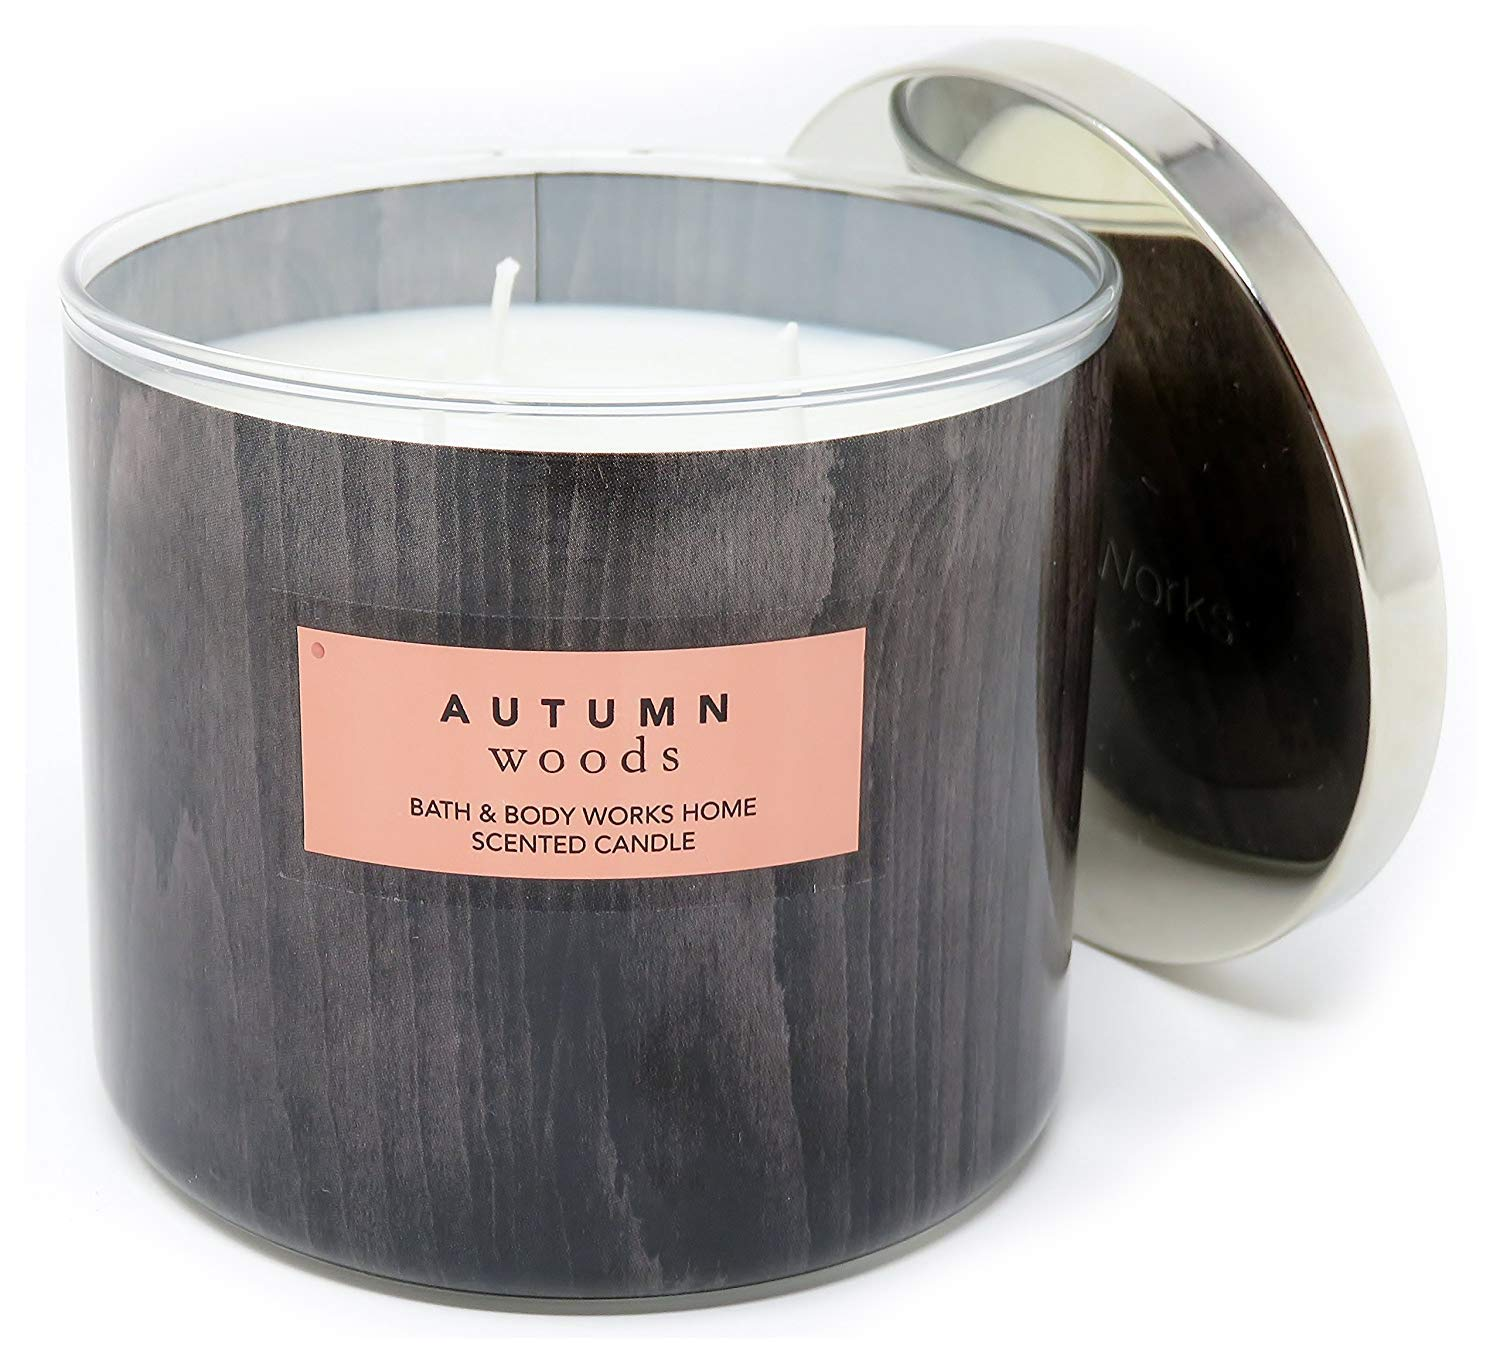 Bath & Body Works Autumn Woods Scented Candle 3 Wick 14.5 Ounce